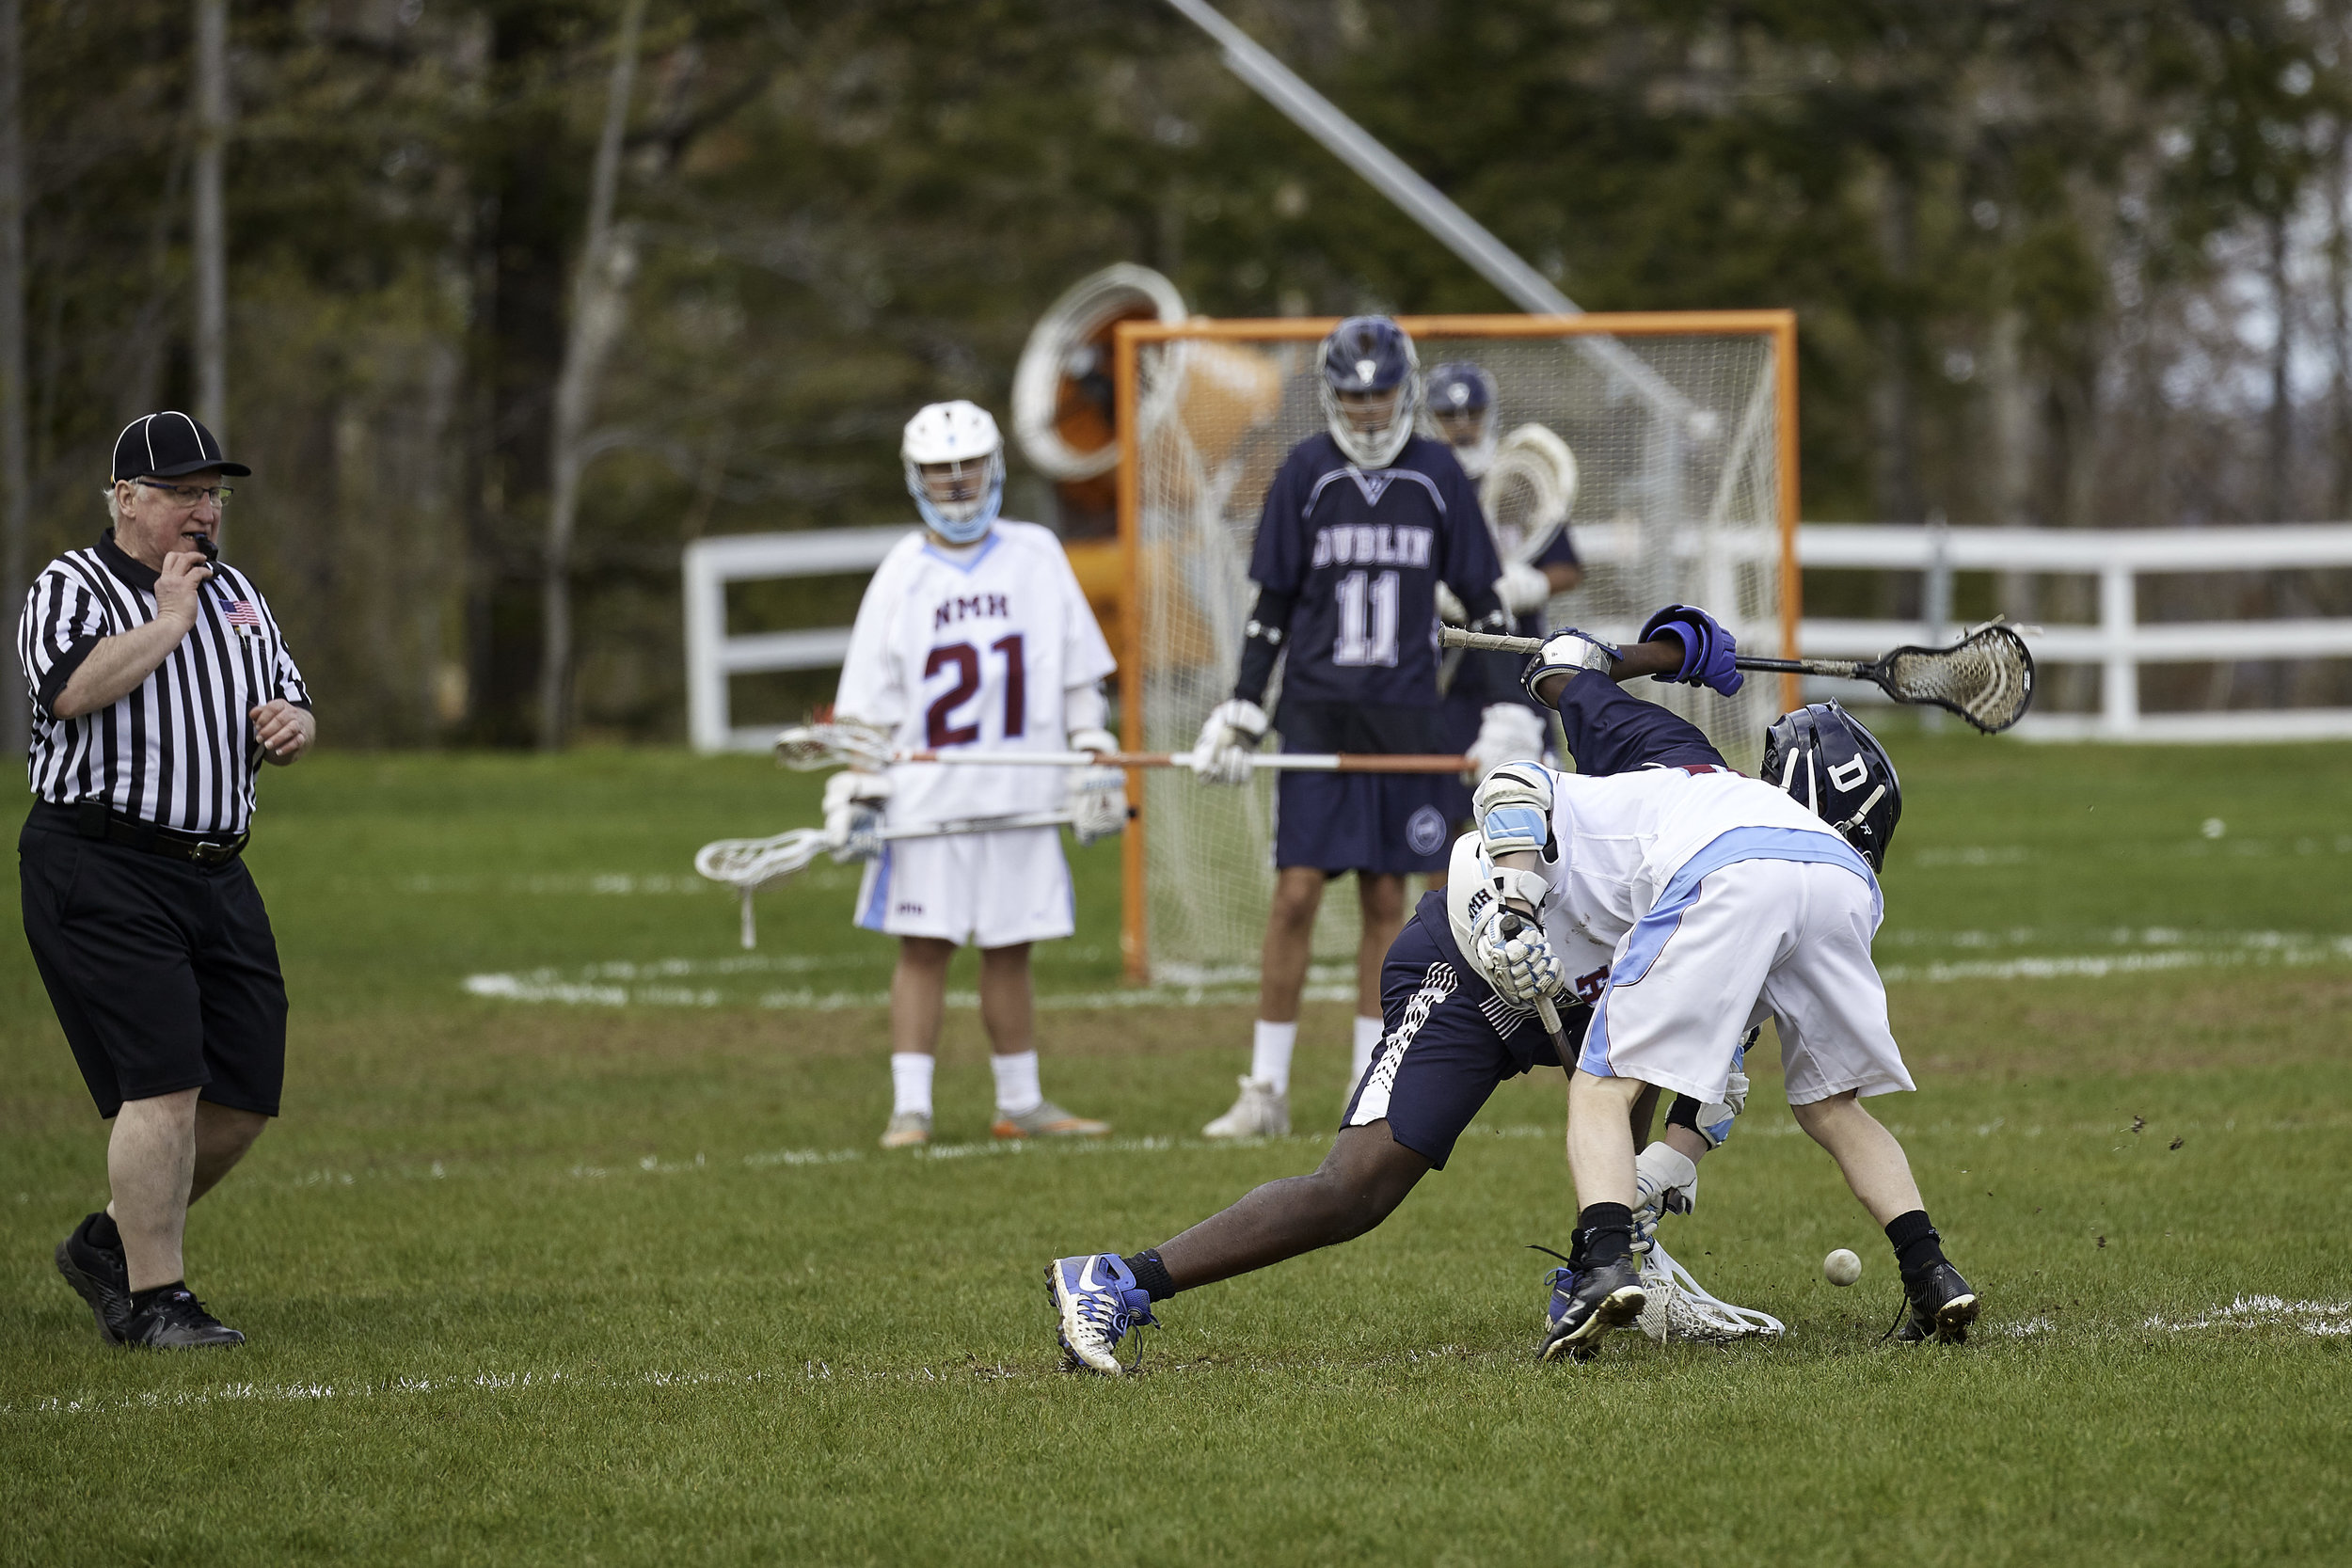 Boys Lax vs Northfield Mount Hermon JV - May 15 2019 - 0038.jpg